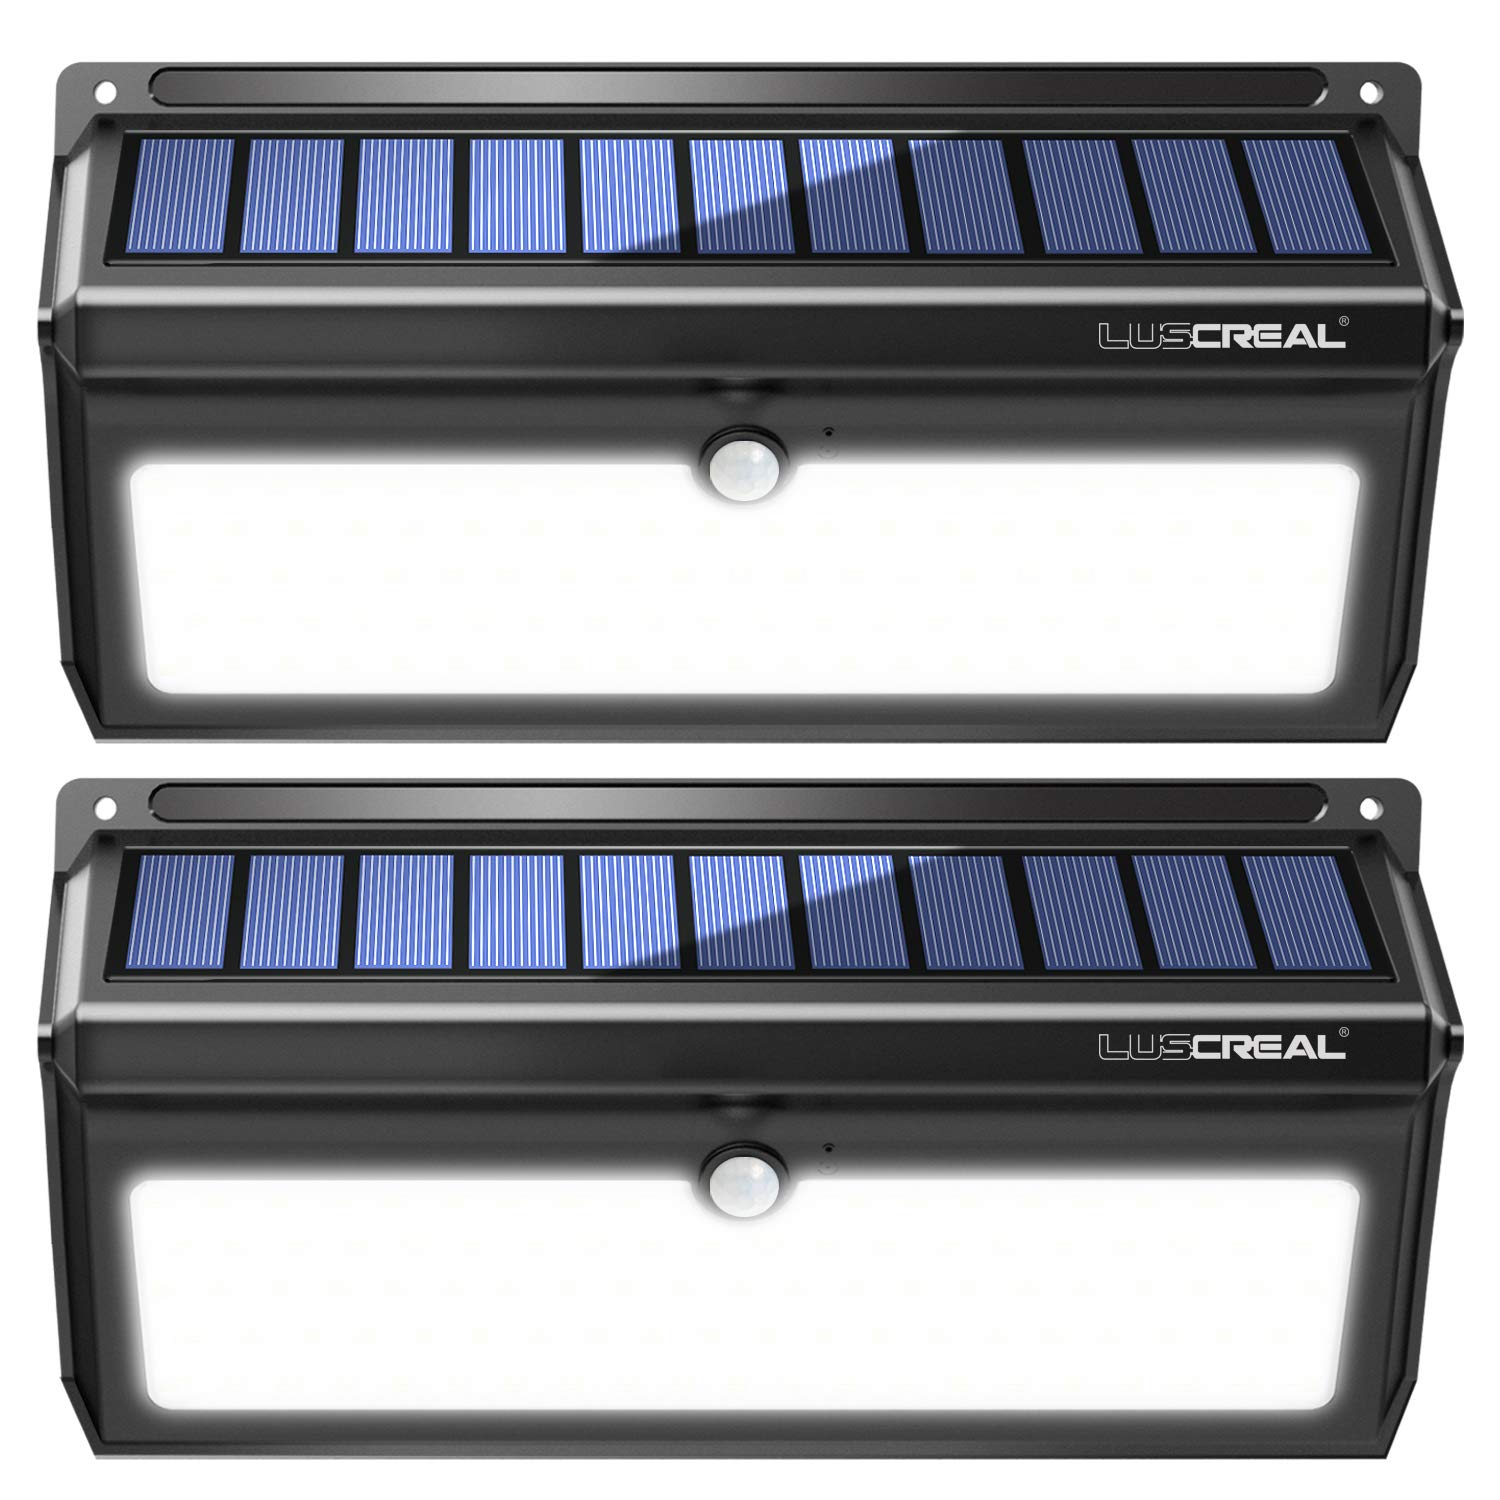 Solar lights Outdoor, Luscreal Super Bright 100 LED Solar Motion Sensor Security Wall Lights for Front Door Back Yard Garage Deck Porch Step Stair Garden Fence Driveaway Patio (2000LM, 2PACK) by LUSCREAL